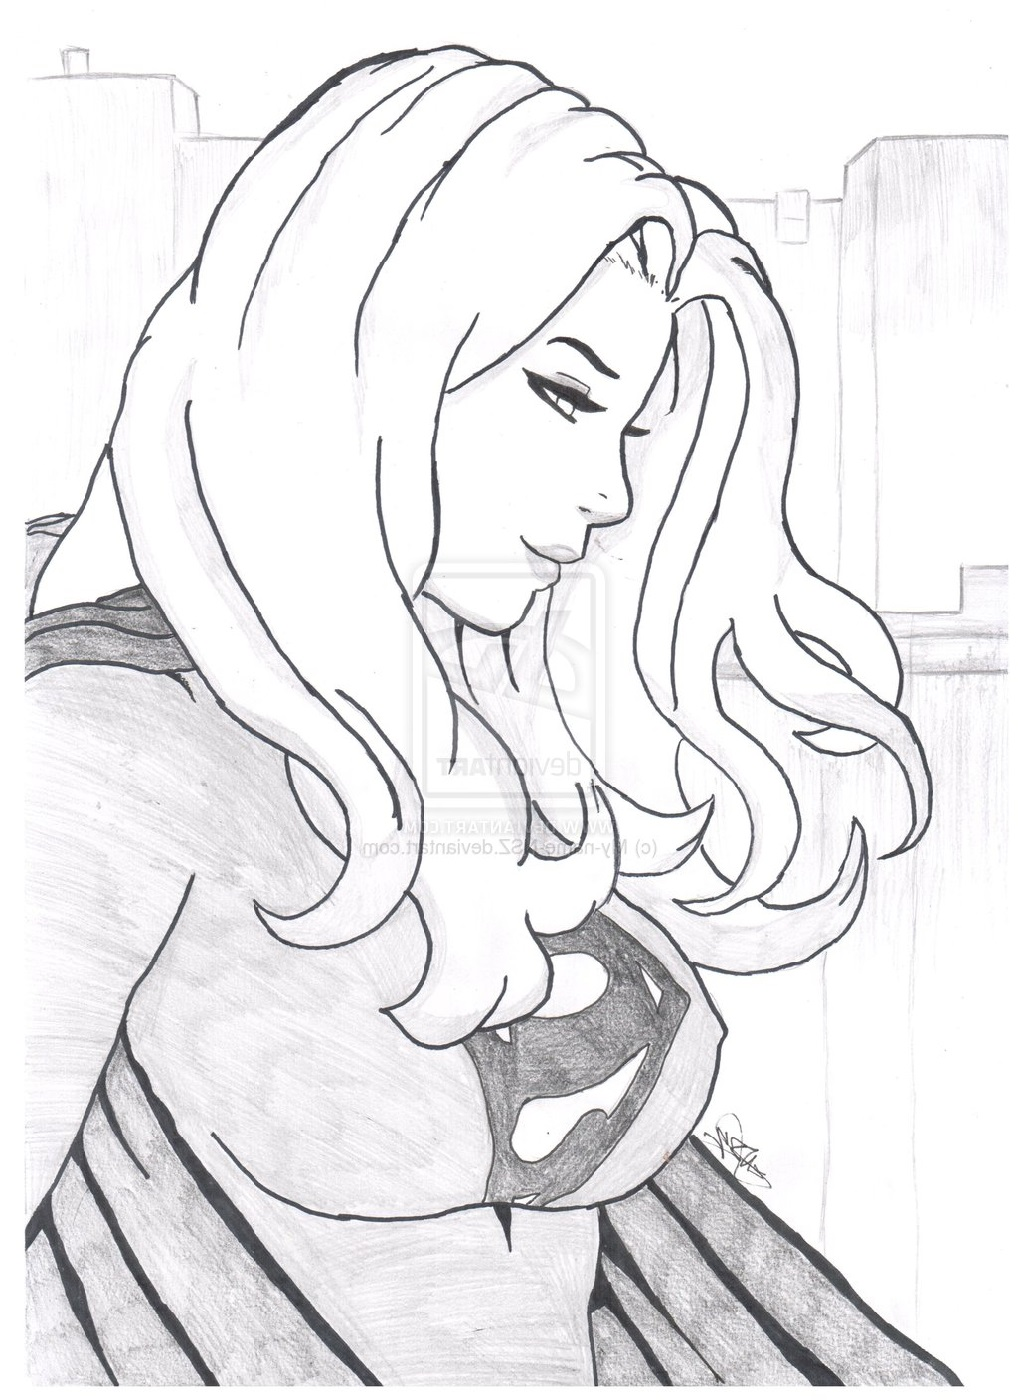 supergirl coloring pages beautiful girl | Educative Printable